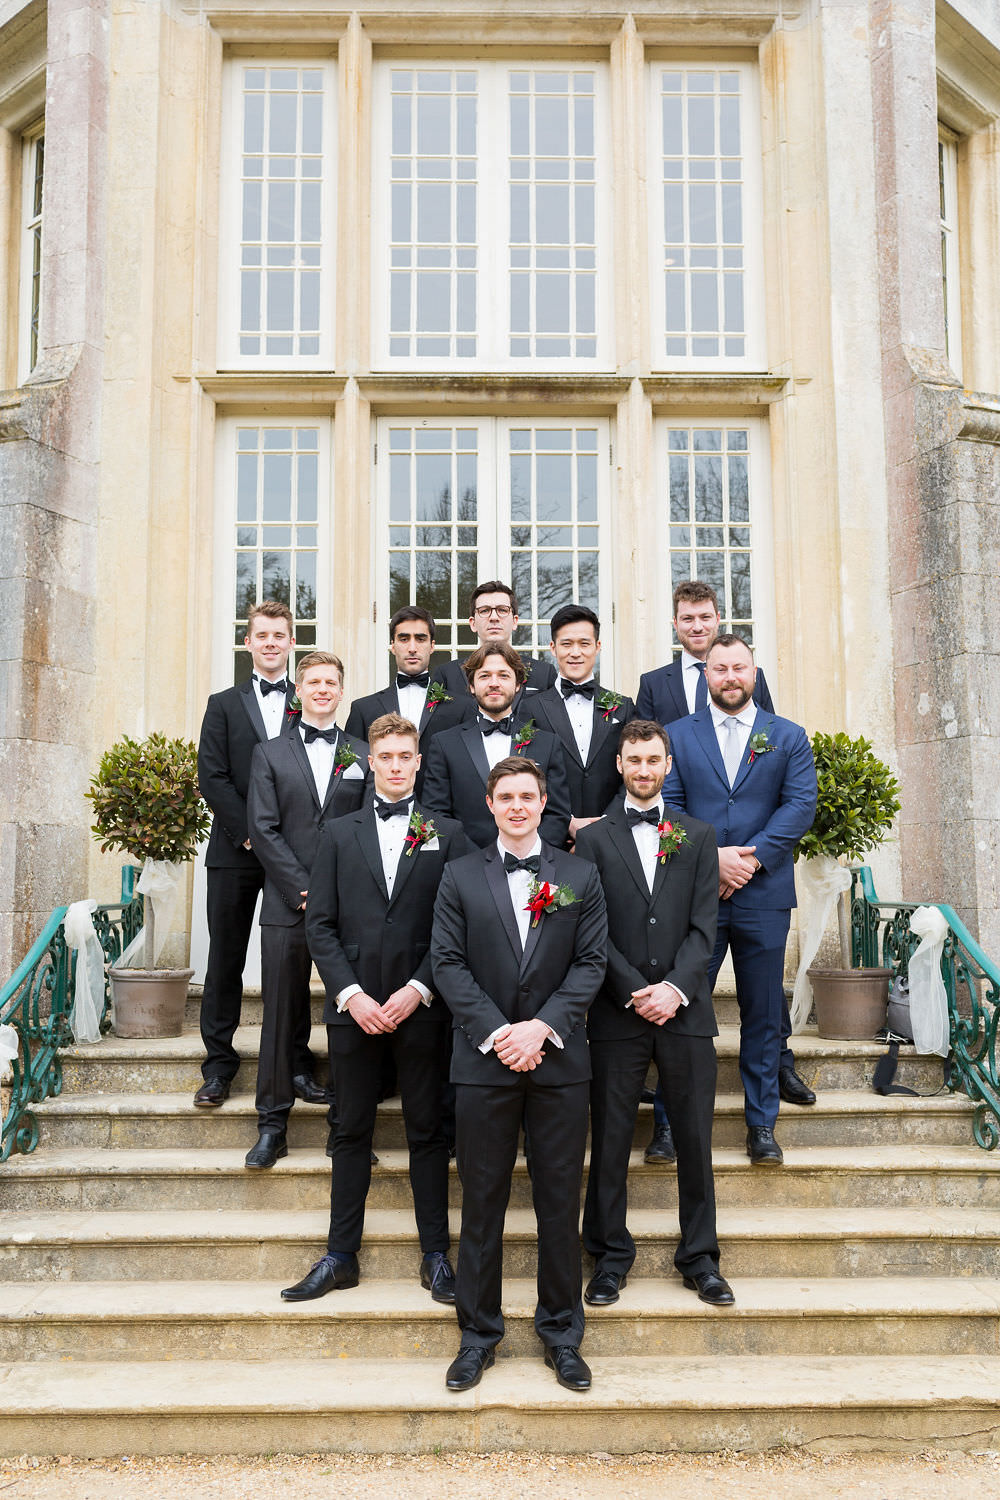 Groom Suit Tuxedo Black Bow Tie Groomsmen Highcliffe Castle Wedding Bowtie and Belle Photography